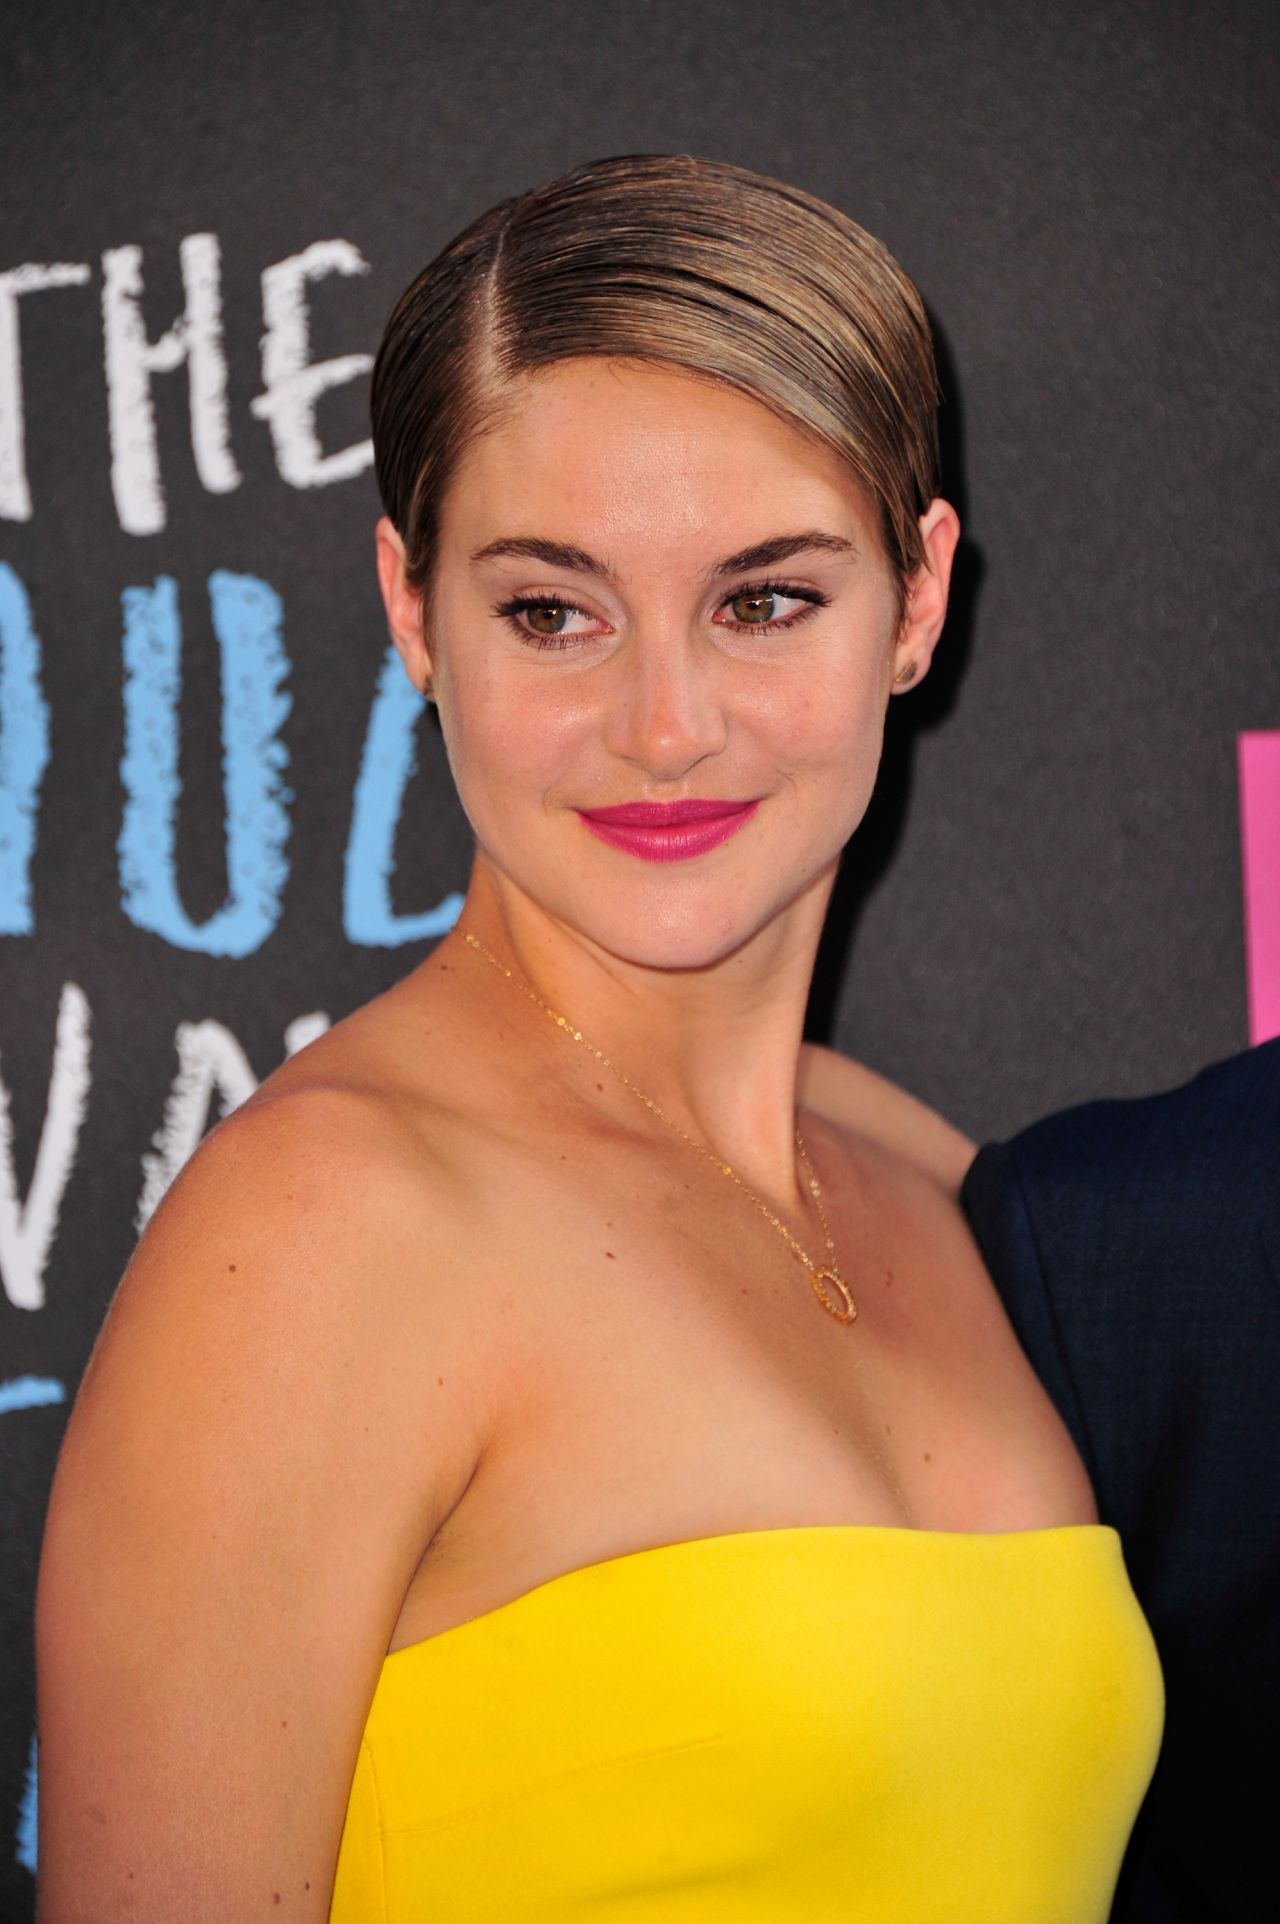 Desktop Stunning Shailene Woodley Pics Download